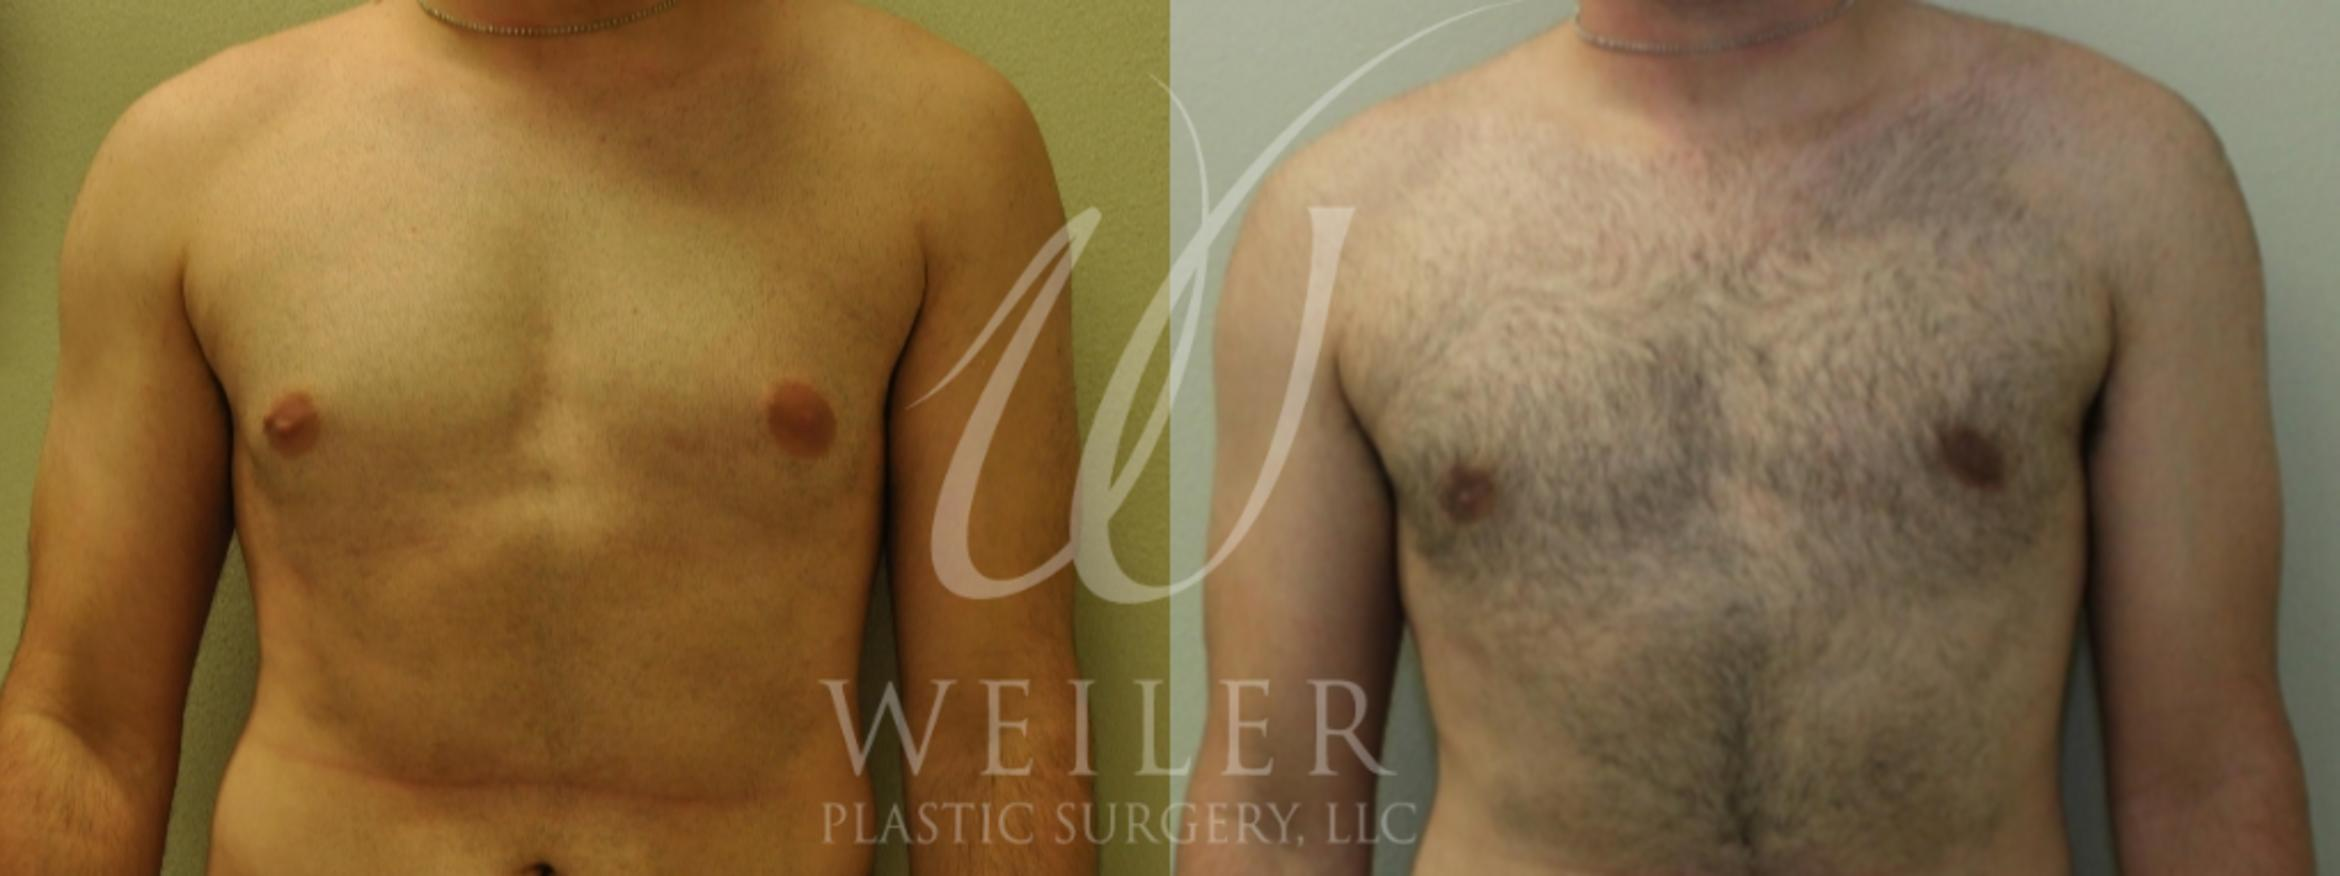 Male Breast Reduction Before & After Photo | Baton Rouge, Louisiana | Weiler Plastic Surgery